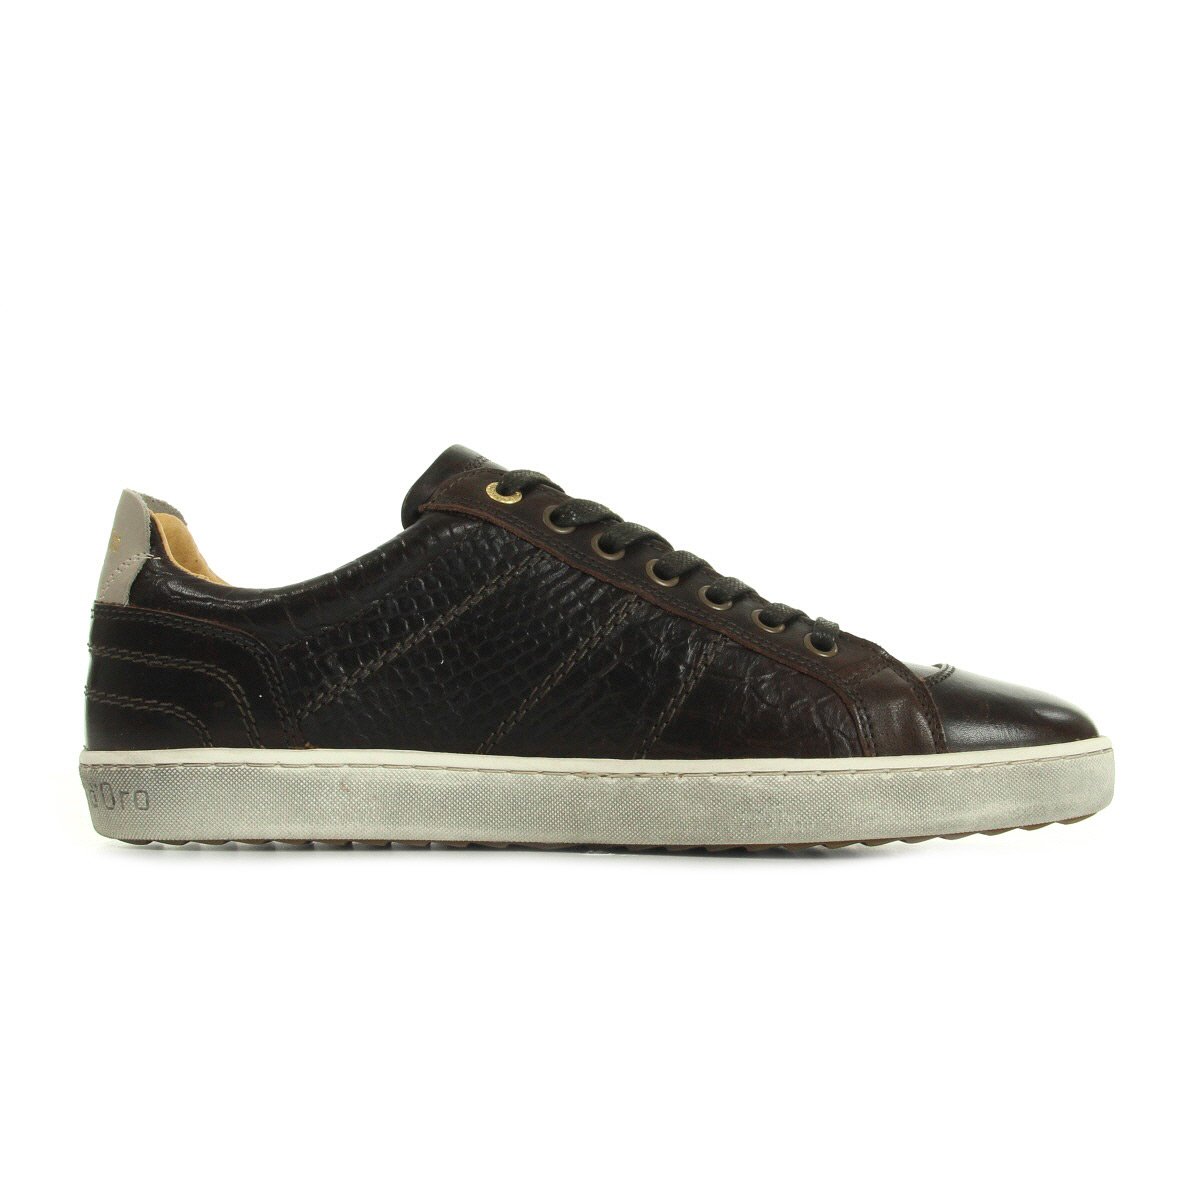 Dark Cocodrillo Uomo Pantofola Low Mode After Homme D'oro Canaverse 10163049iquBaskets sCthrdQx